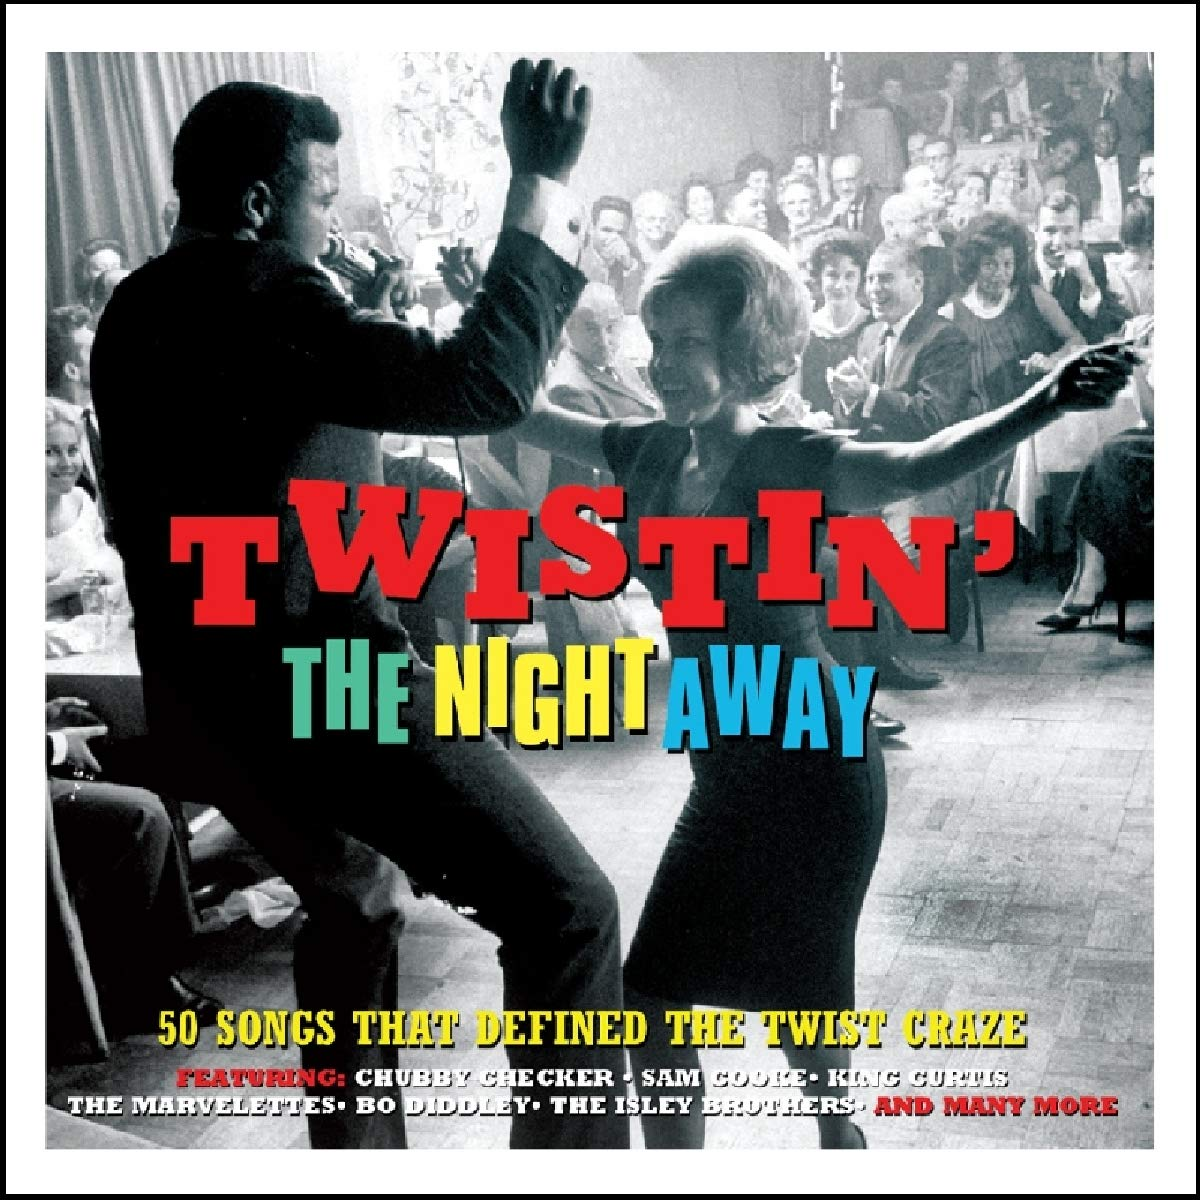 TWISTIN' THE NIGHT AWAY: 50 SONGS THAT POPULARIZED THE TWIST (2 CDS)